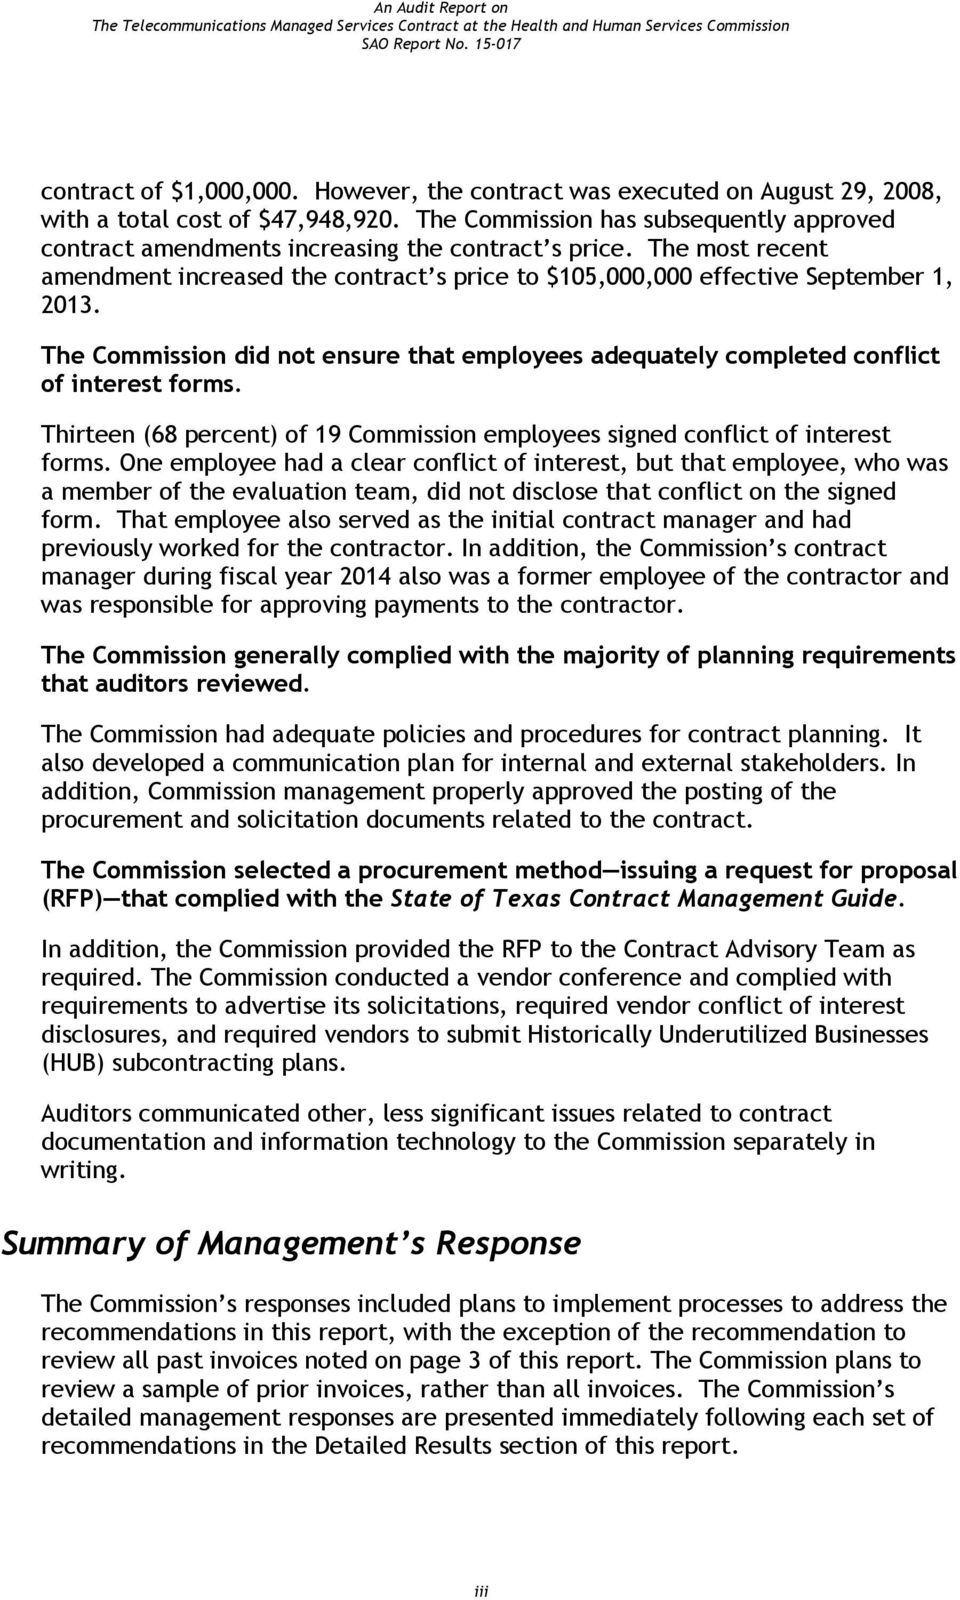 The most recent amendment increased the contract s price to $105,000,000 effective September 1, 2013. The Commission did not ensure that employees adequately completed conflict of interest forms.